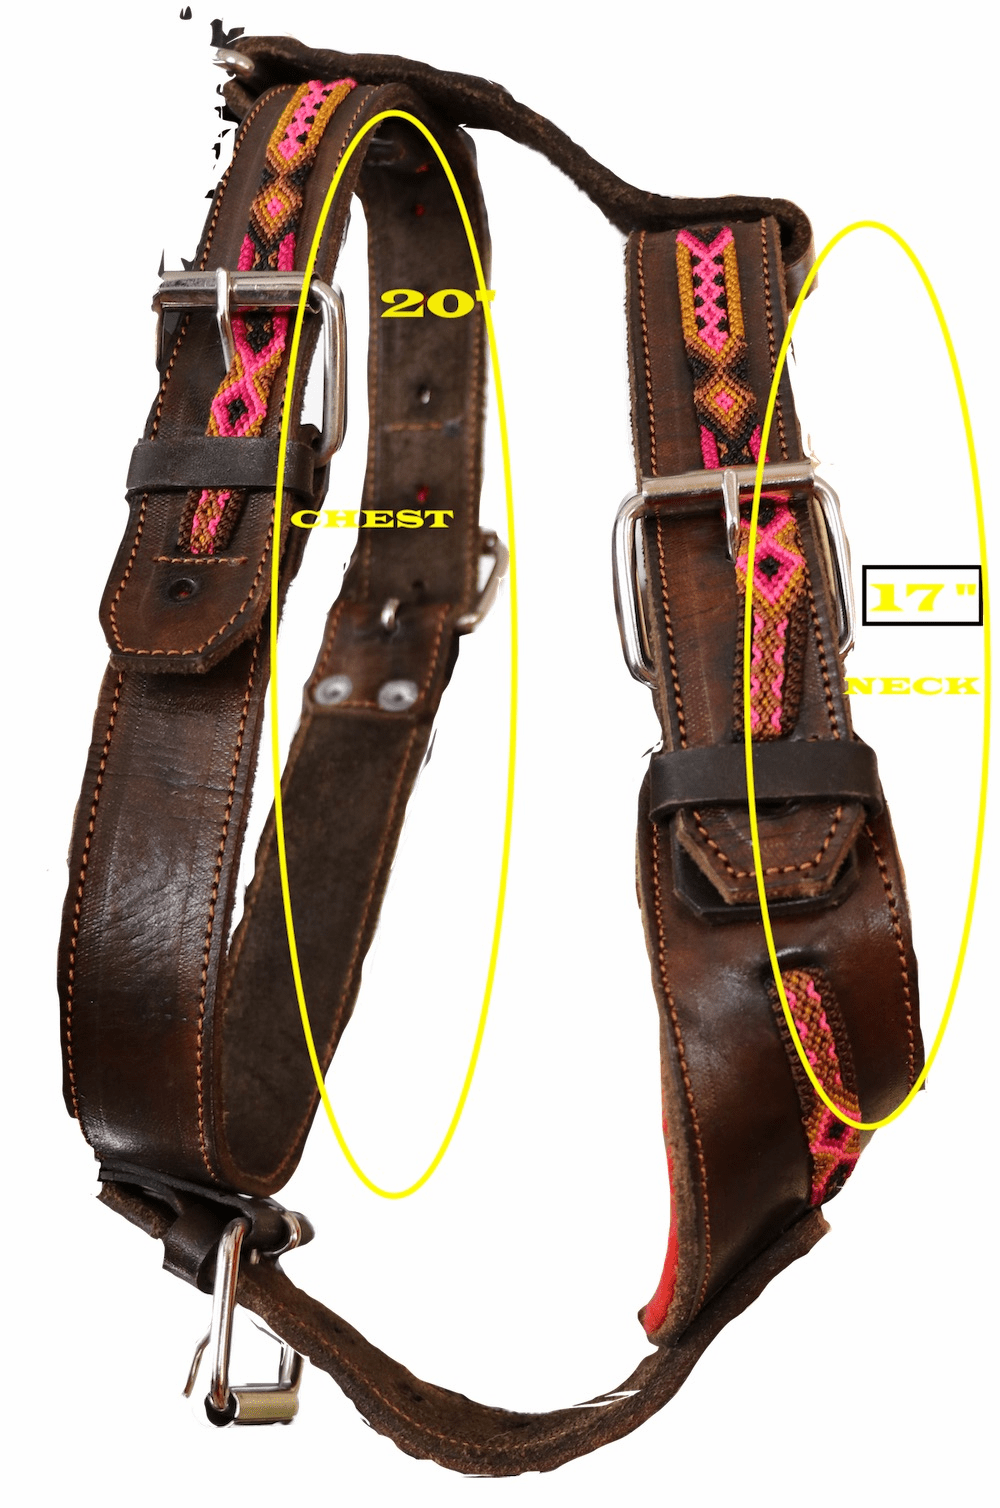 MEDIUM WOVEN LEATHER HARNESS